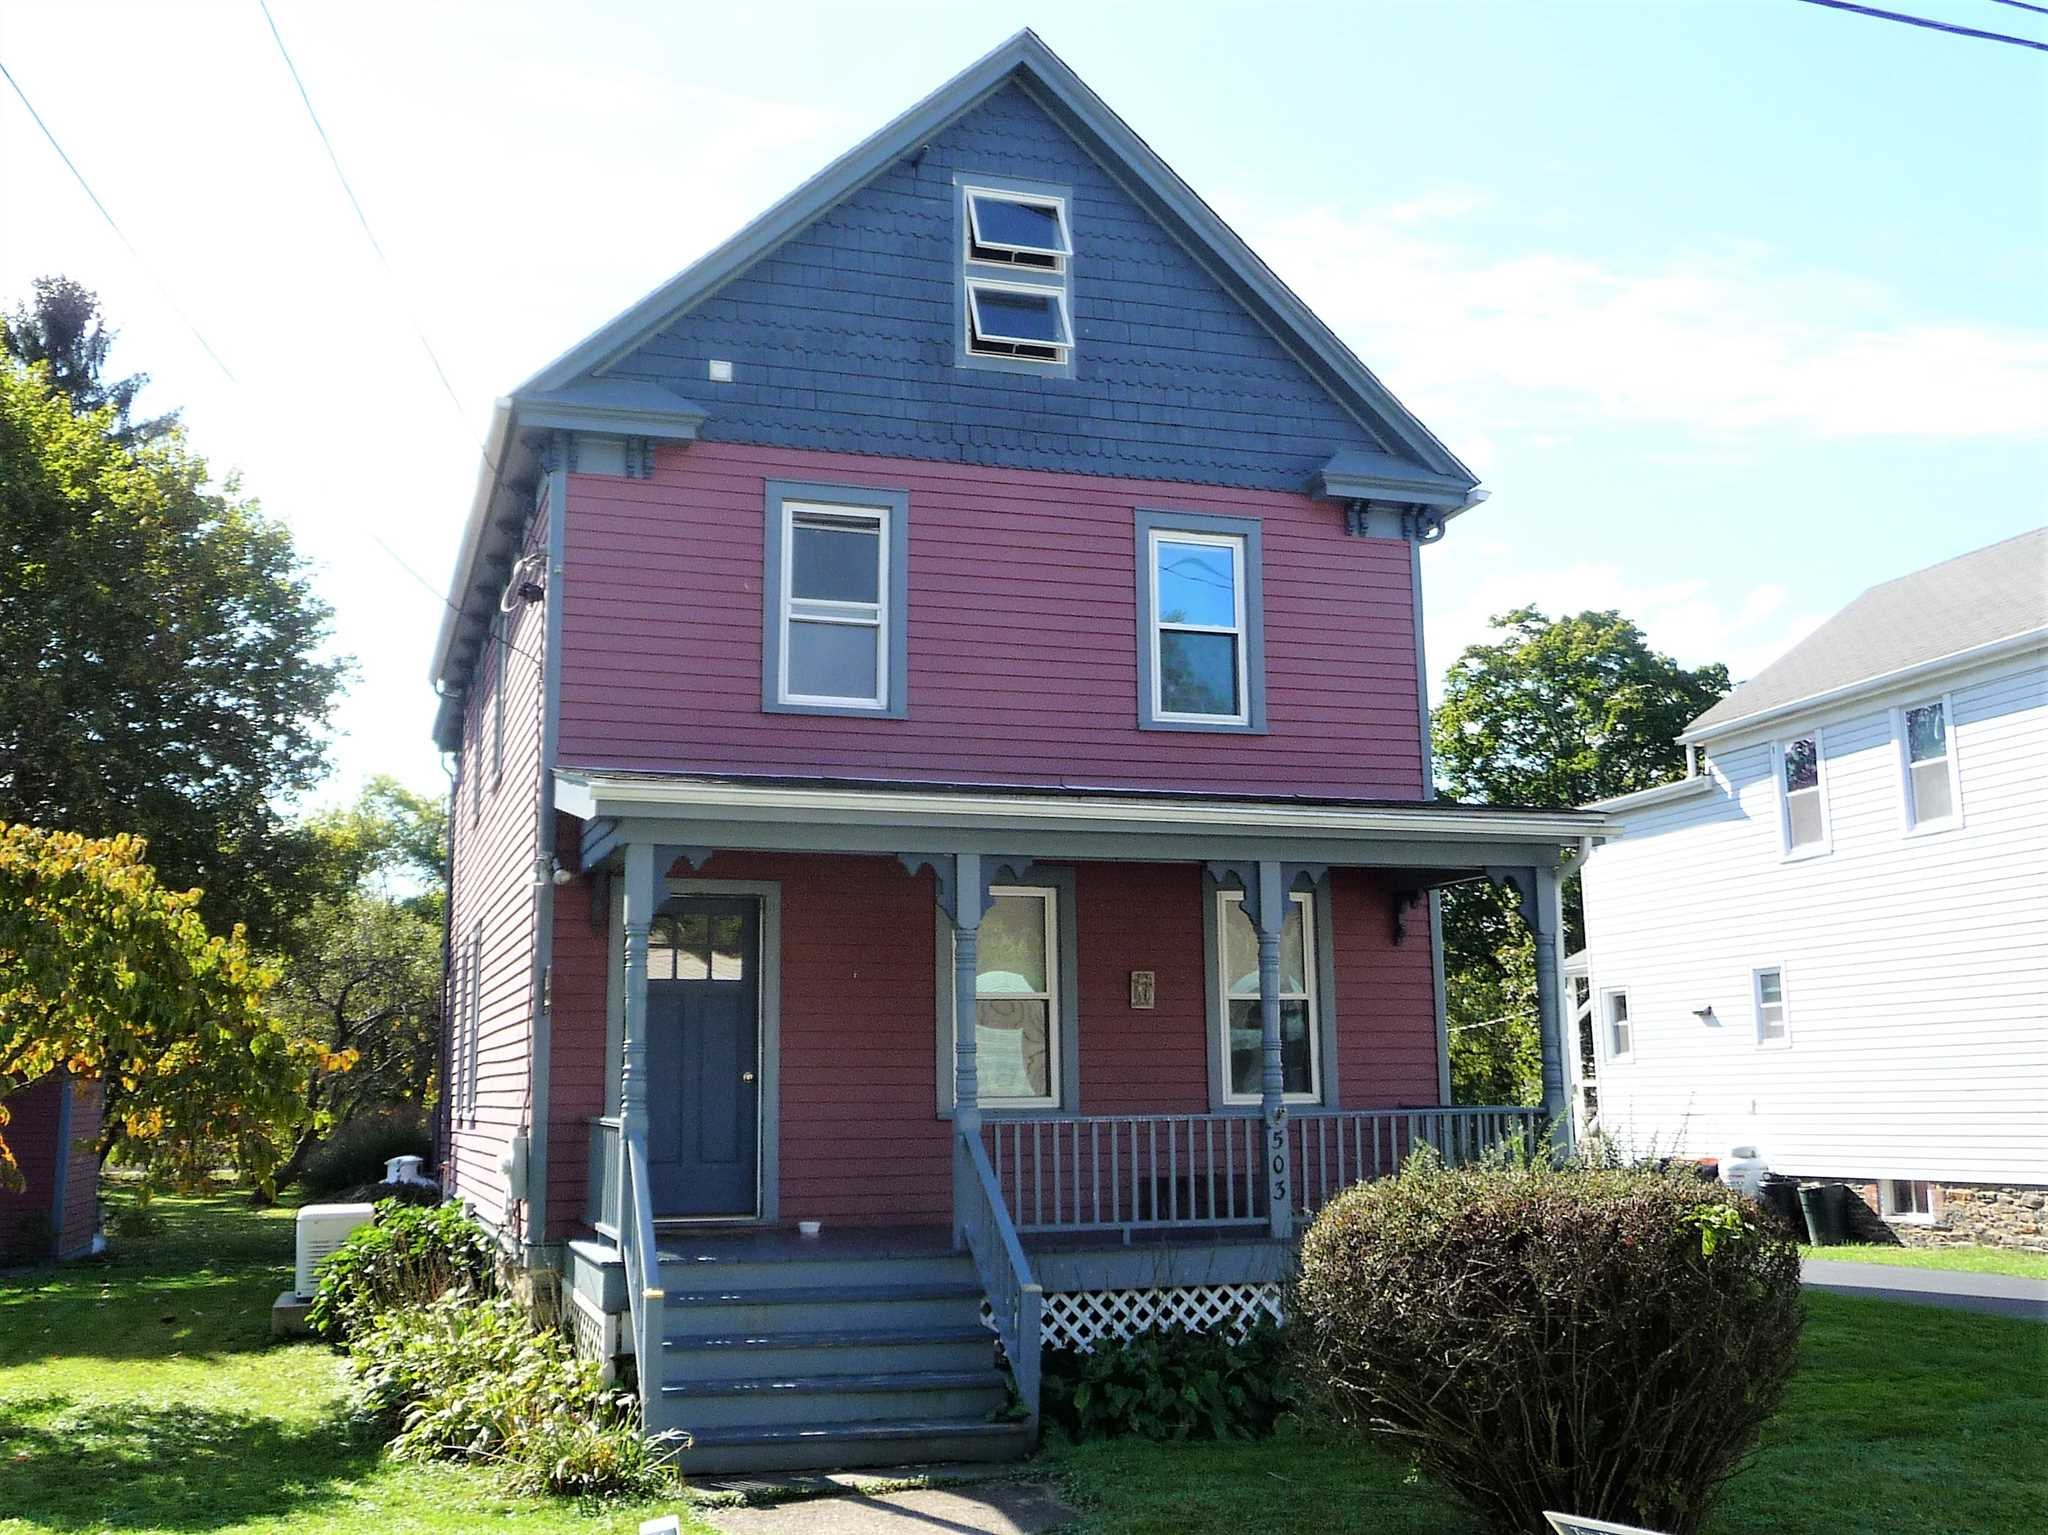 Single Family Home for Sale at 503 RIVER Road 503 RIVER Road Hyde Park, New York 12580 United States